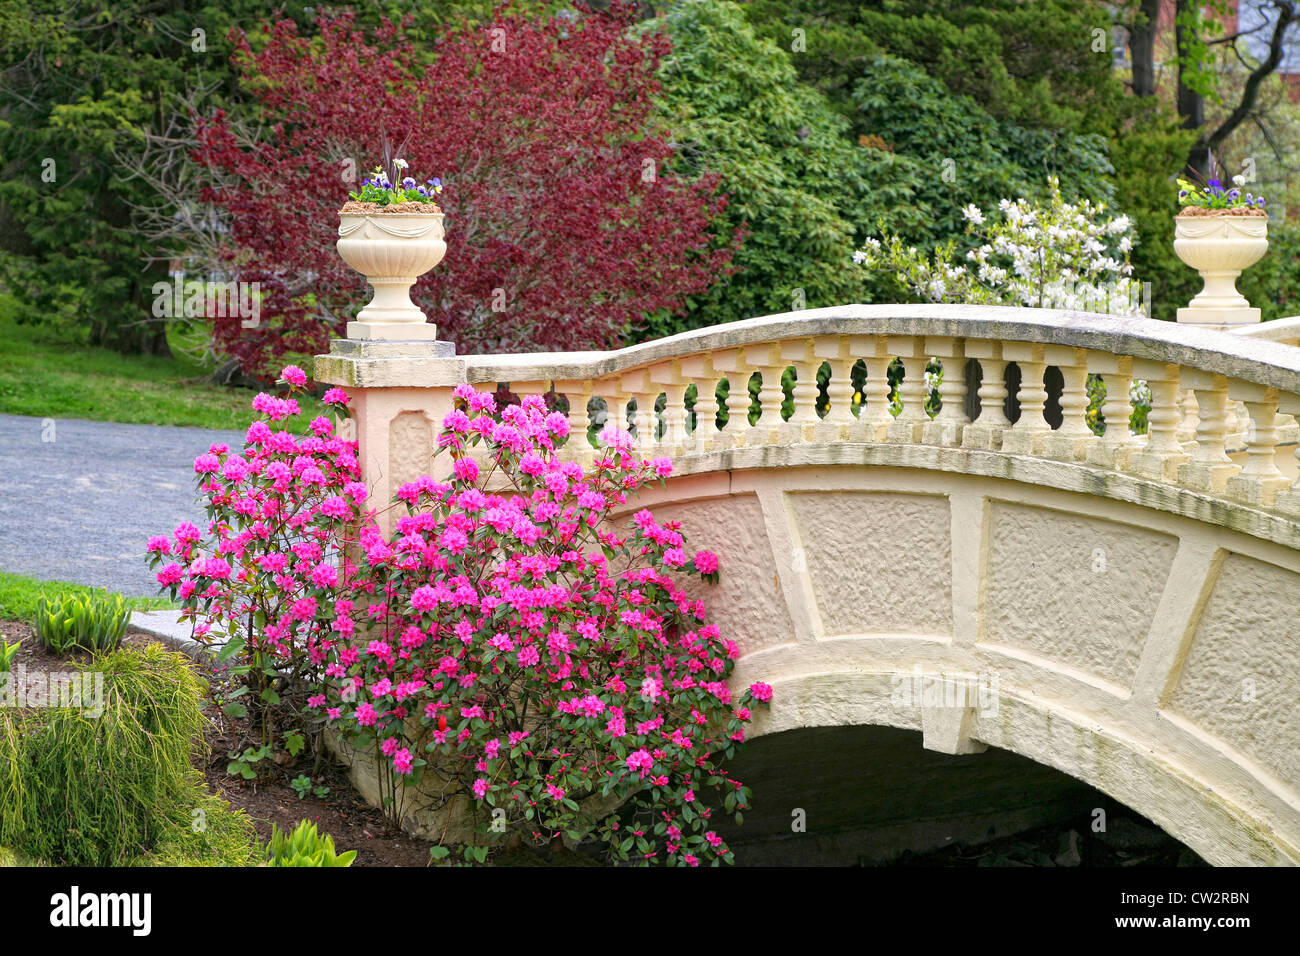 A PJM rhododendron and annual flowers adorn a garden bridge in a springtime park. - Stock Image